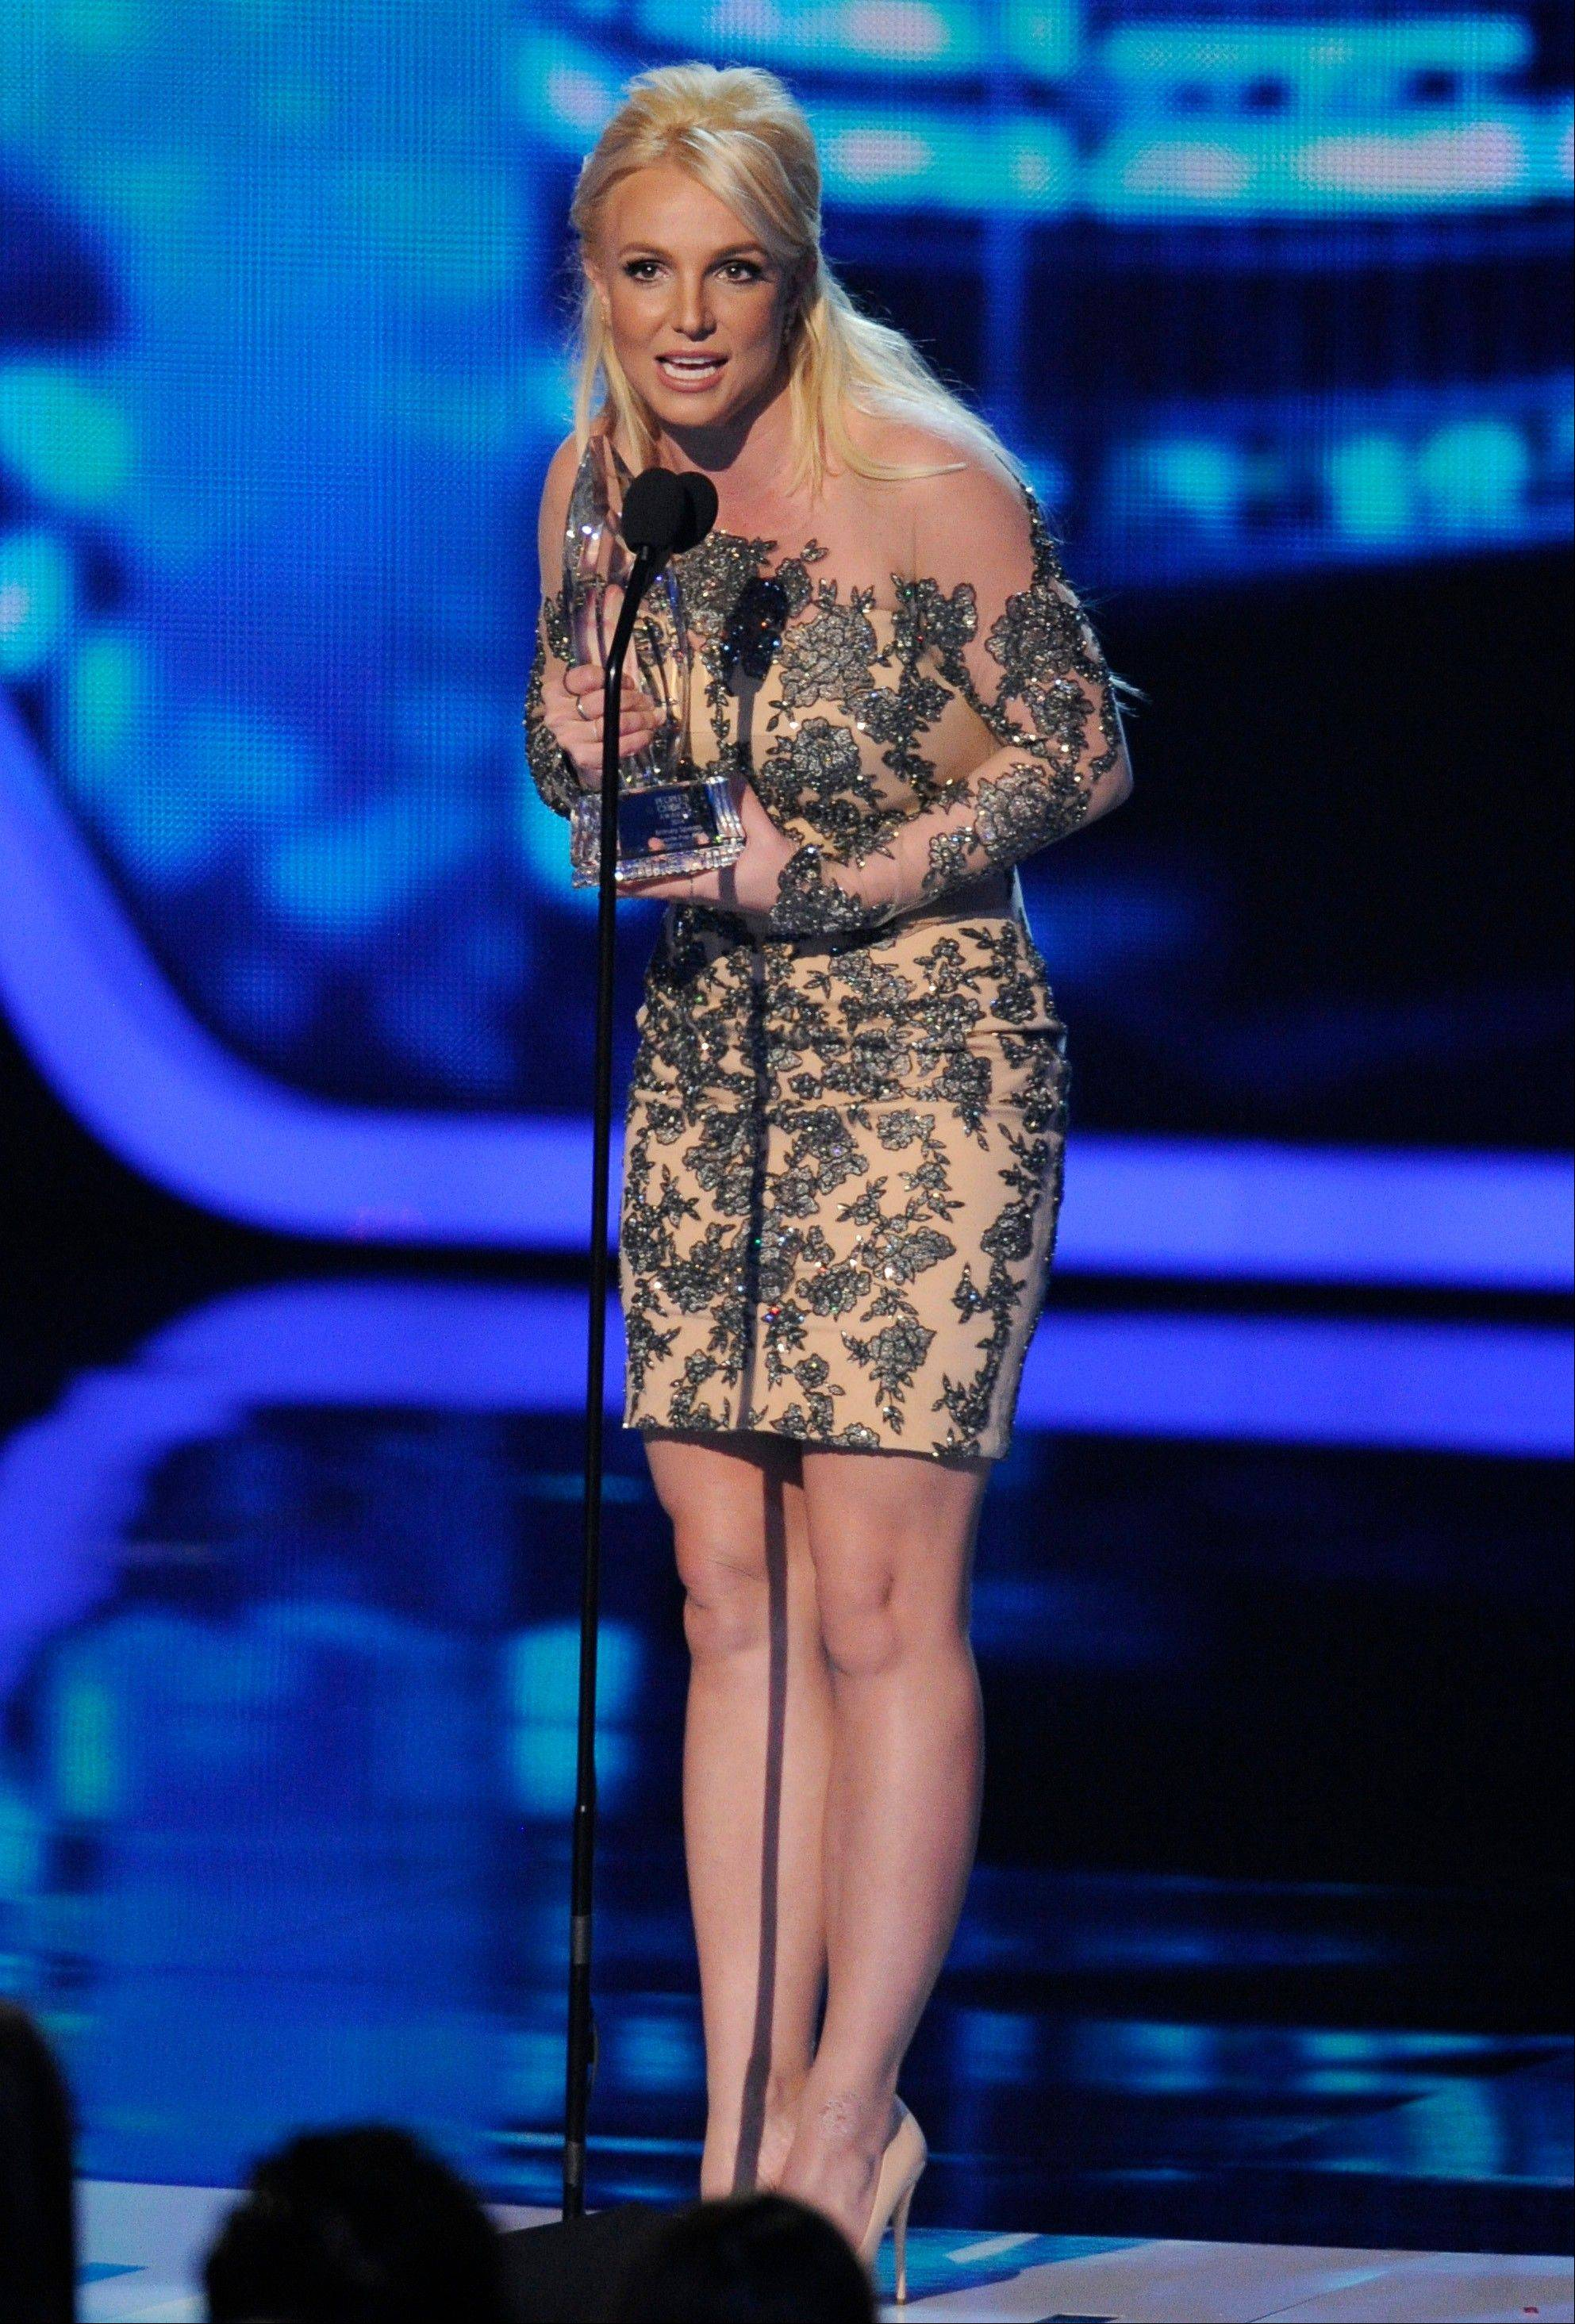 Associated PressBritney Spears accepts the award for favorite pop artist at the 40th annual People's Choice Awards at the Nokia Theatre L.A. Live on Wednesday, Jan. 8, 2014, in Los Angeles.